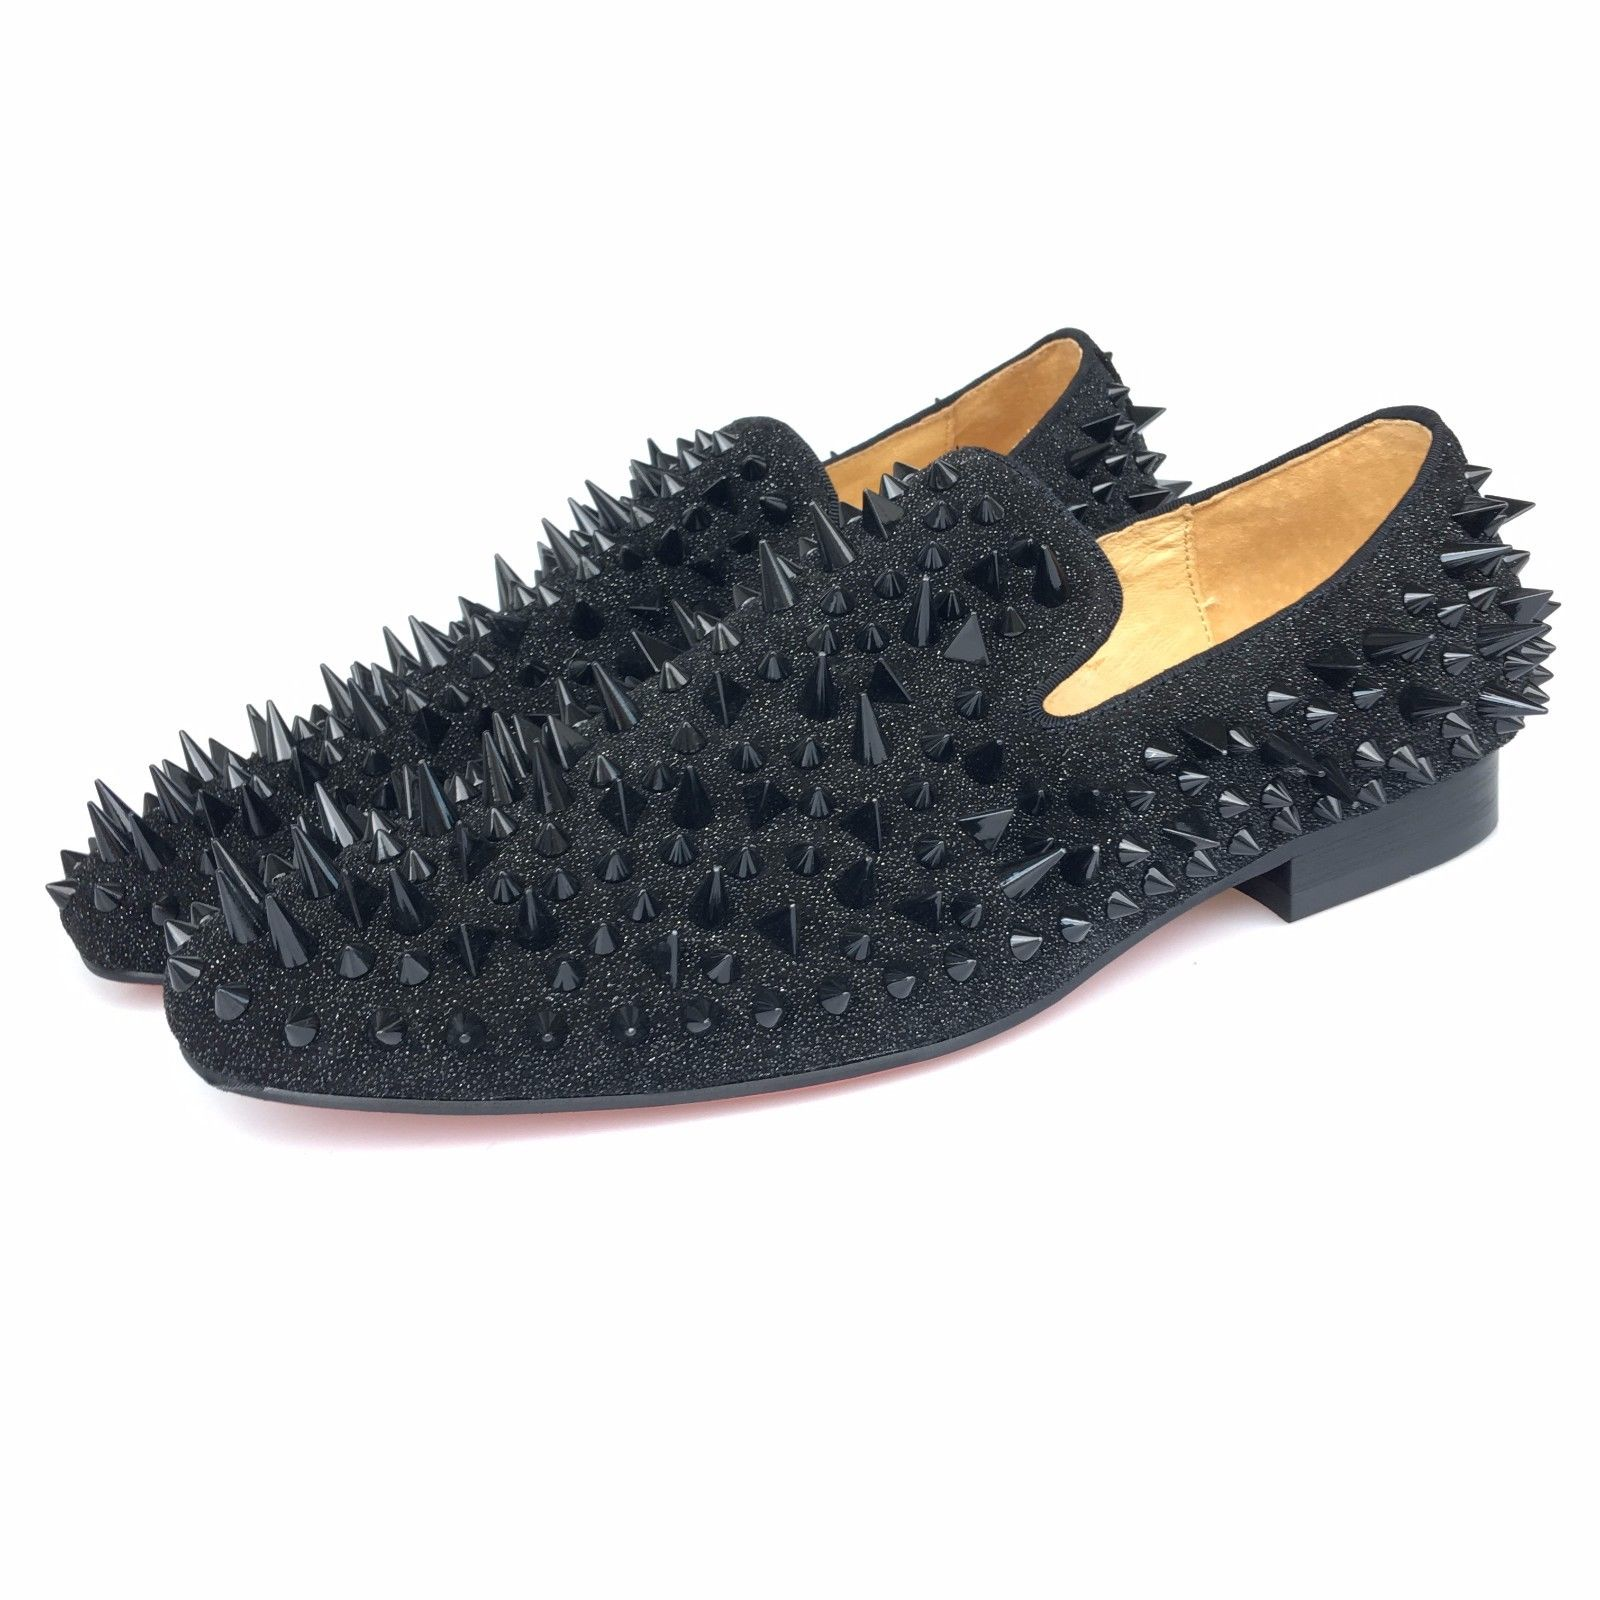 dc74a37e73b8 Details about Handmade Men Leather Loafers Shoes Slippers Flat with Gold  Spikes and Red Bottom